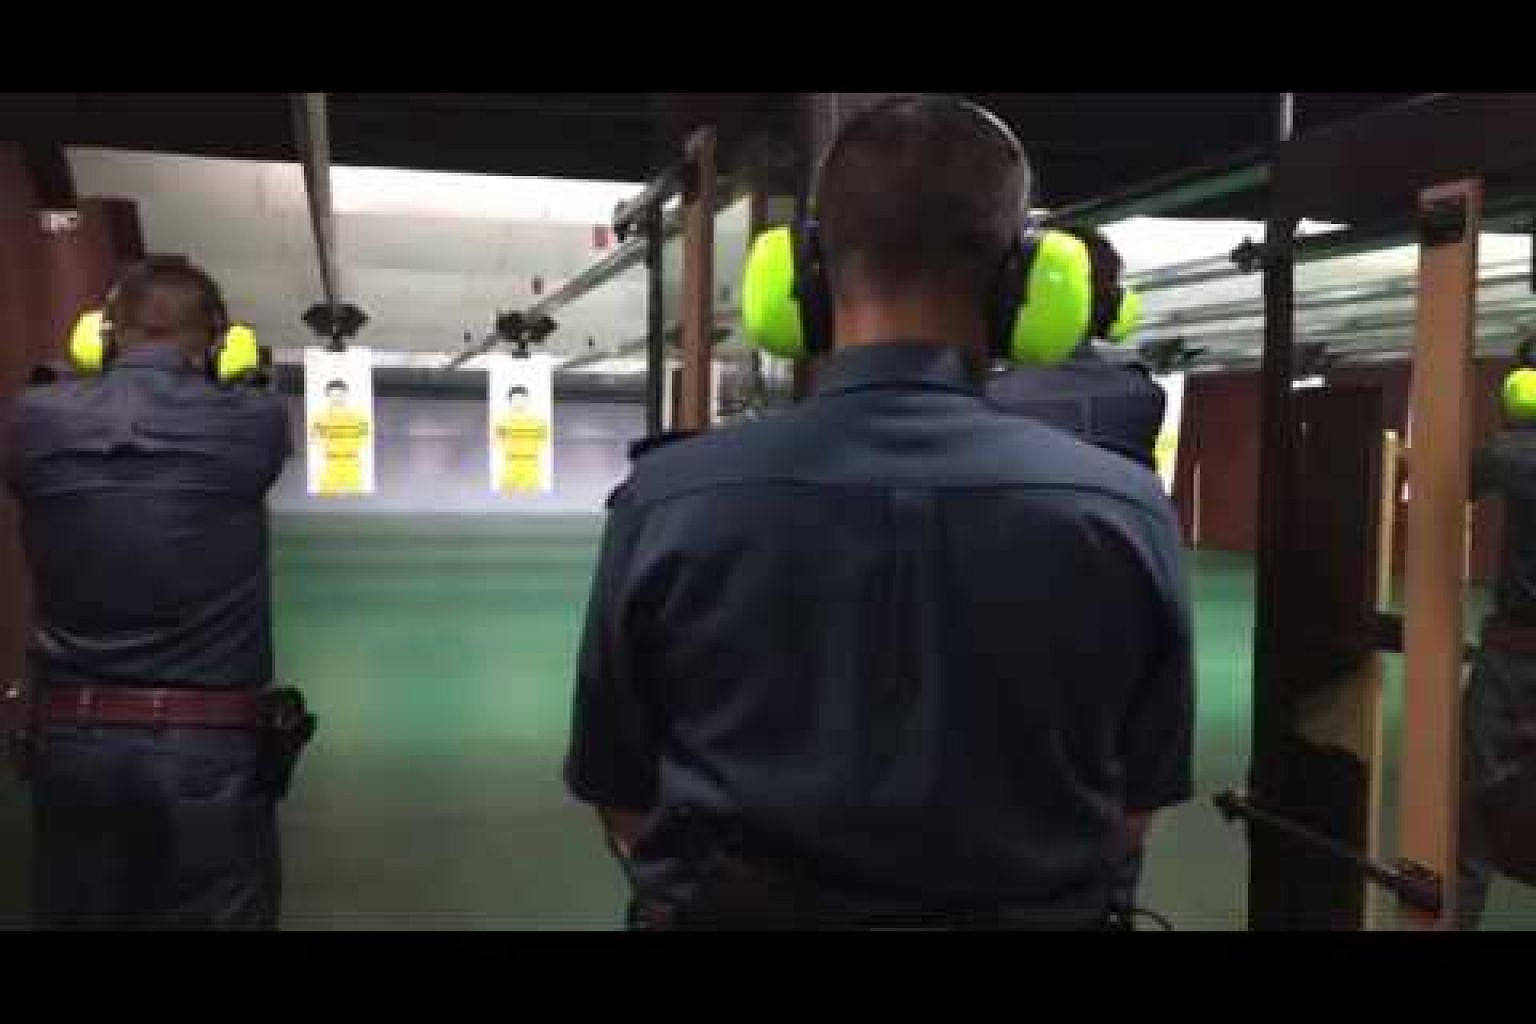 Live-firing training at the Certis Cisco indoor shooting range